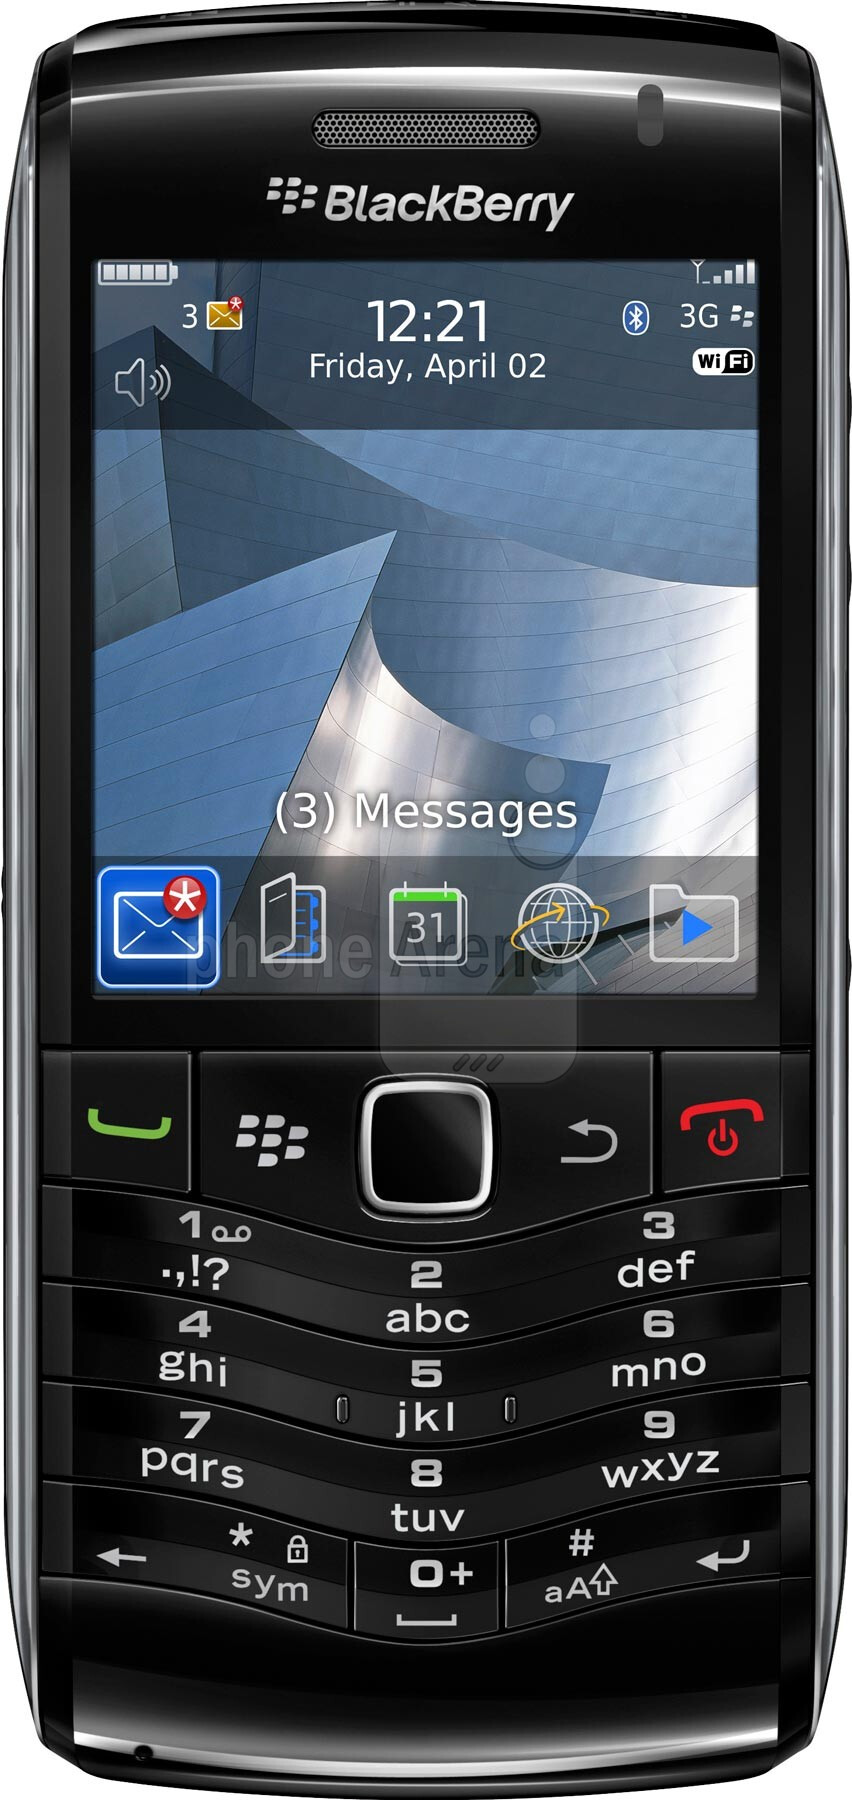 blackberry pearl 9105 size real life visualization and comparison rh phonearena com BlackBerry Pearl 9100 BlackBerry Pearl 8100